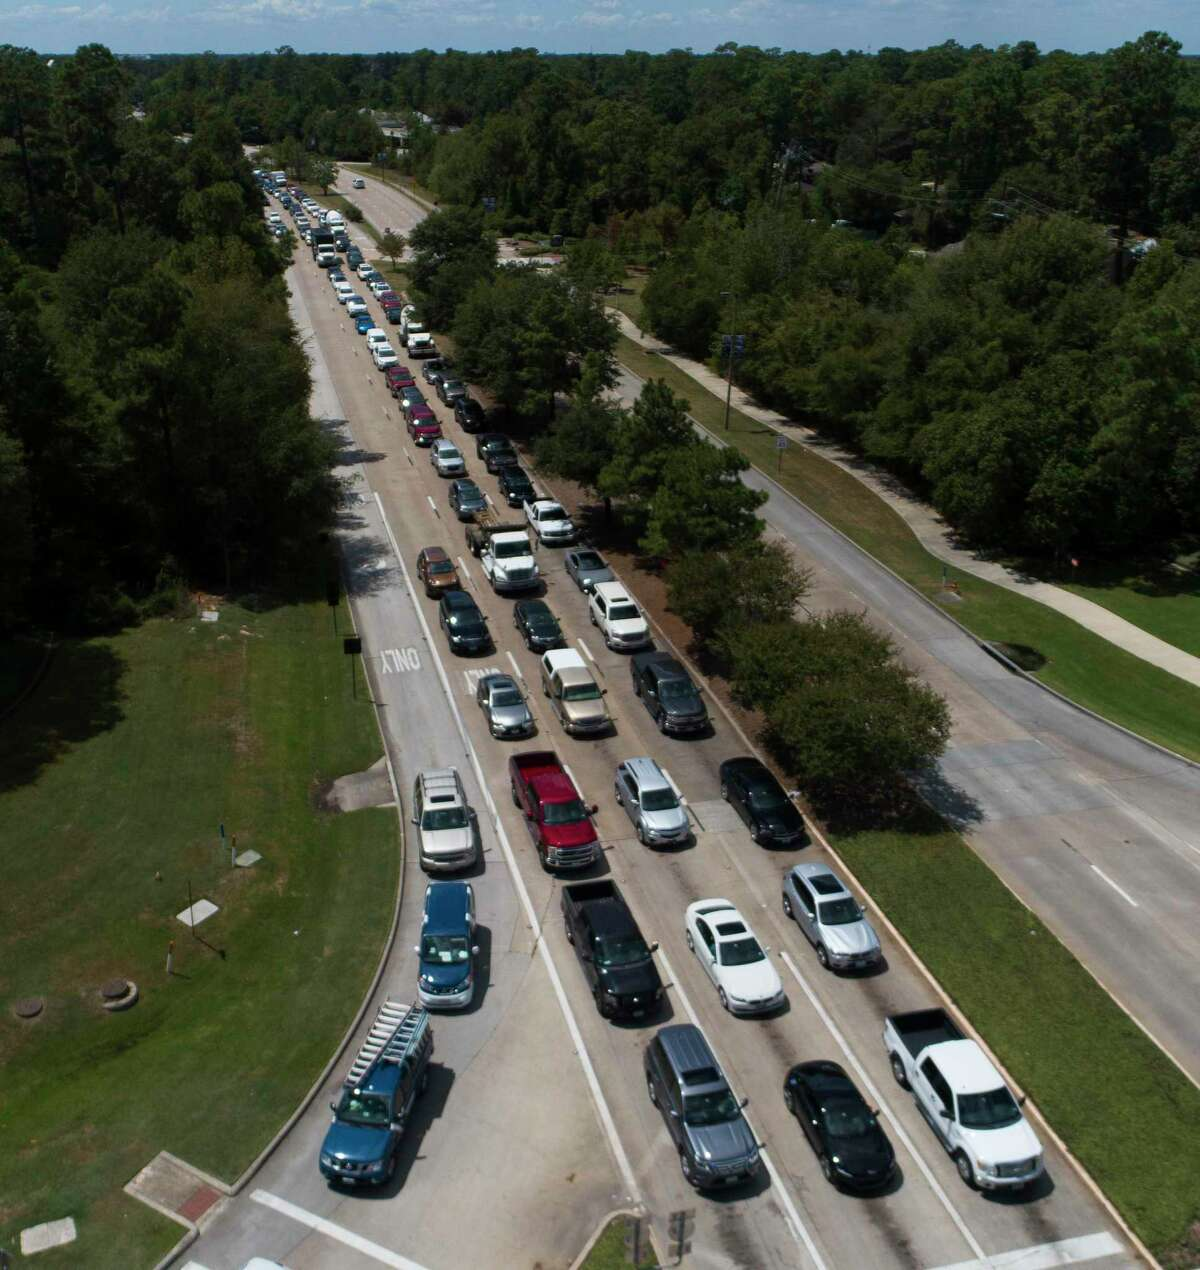 Vehicles are back up on Research Forest Drive near I-45 after power to many of the area's traffic lights went out in addition to homes and businesses, Thursday, Aug. 27, 2020. More than 100,000 customers lost power as of Thursday afternoon as Entergy-Texas began rolling power outages for its Texas customers after extensive damage to the company's transmission system caused by Hurricane Laura.